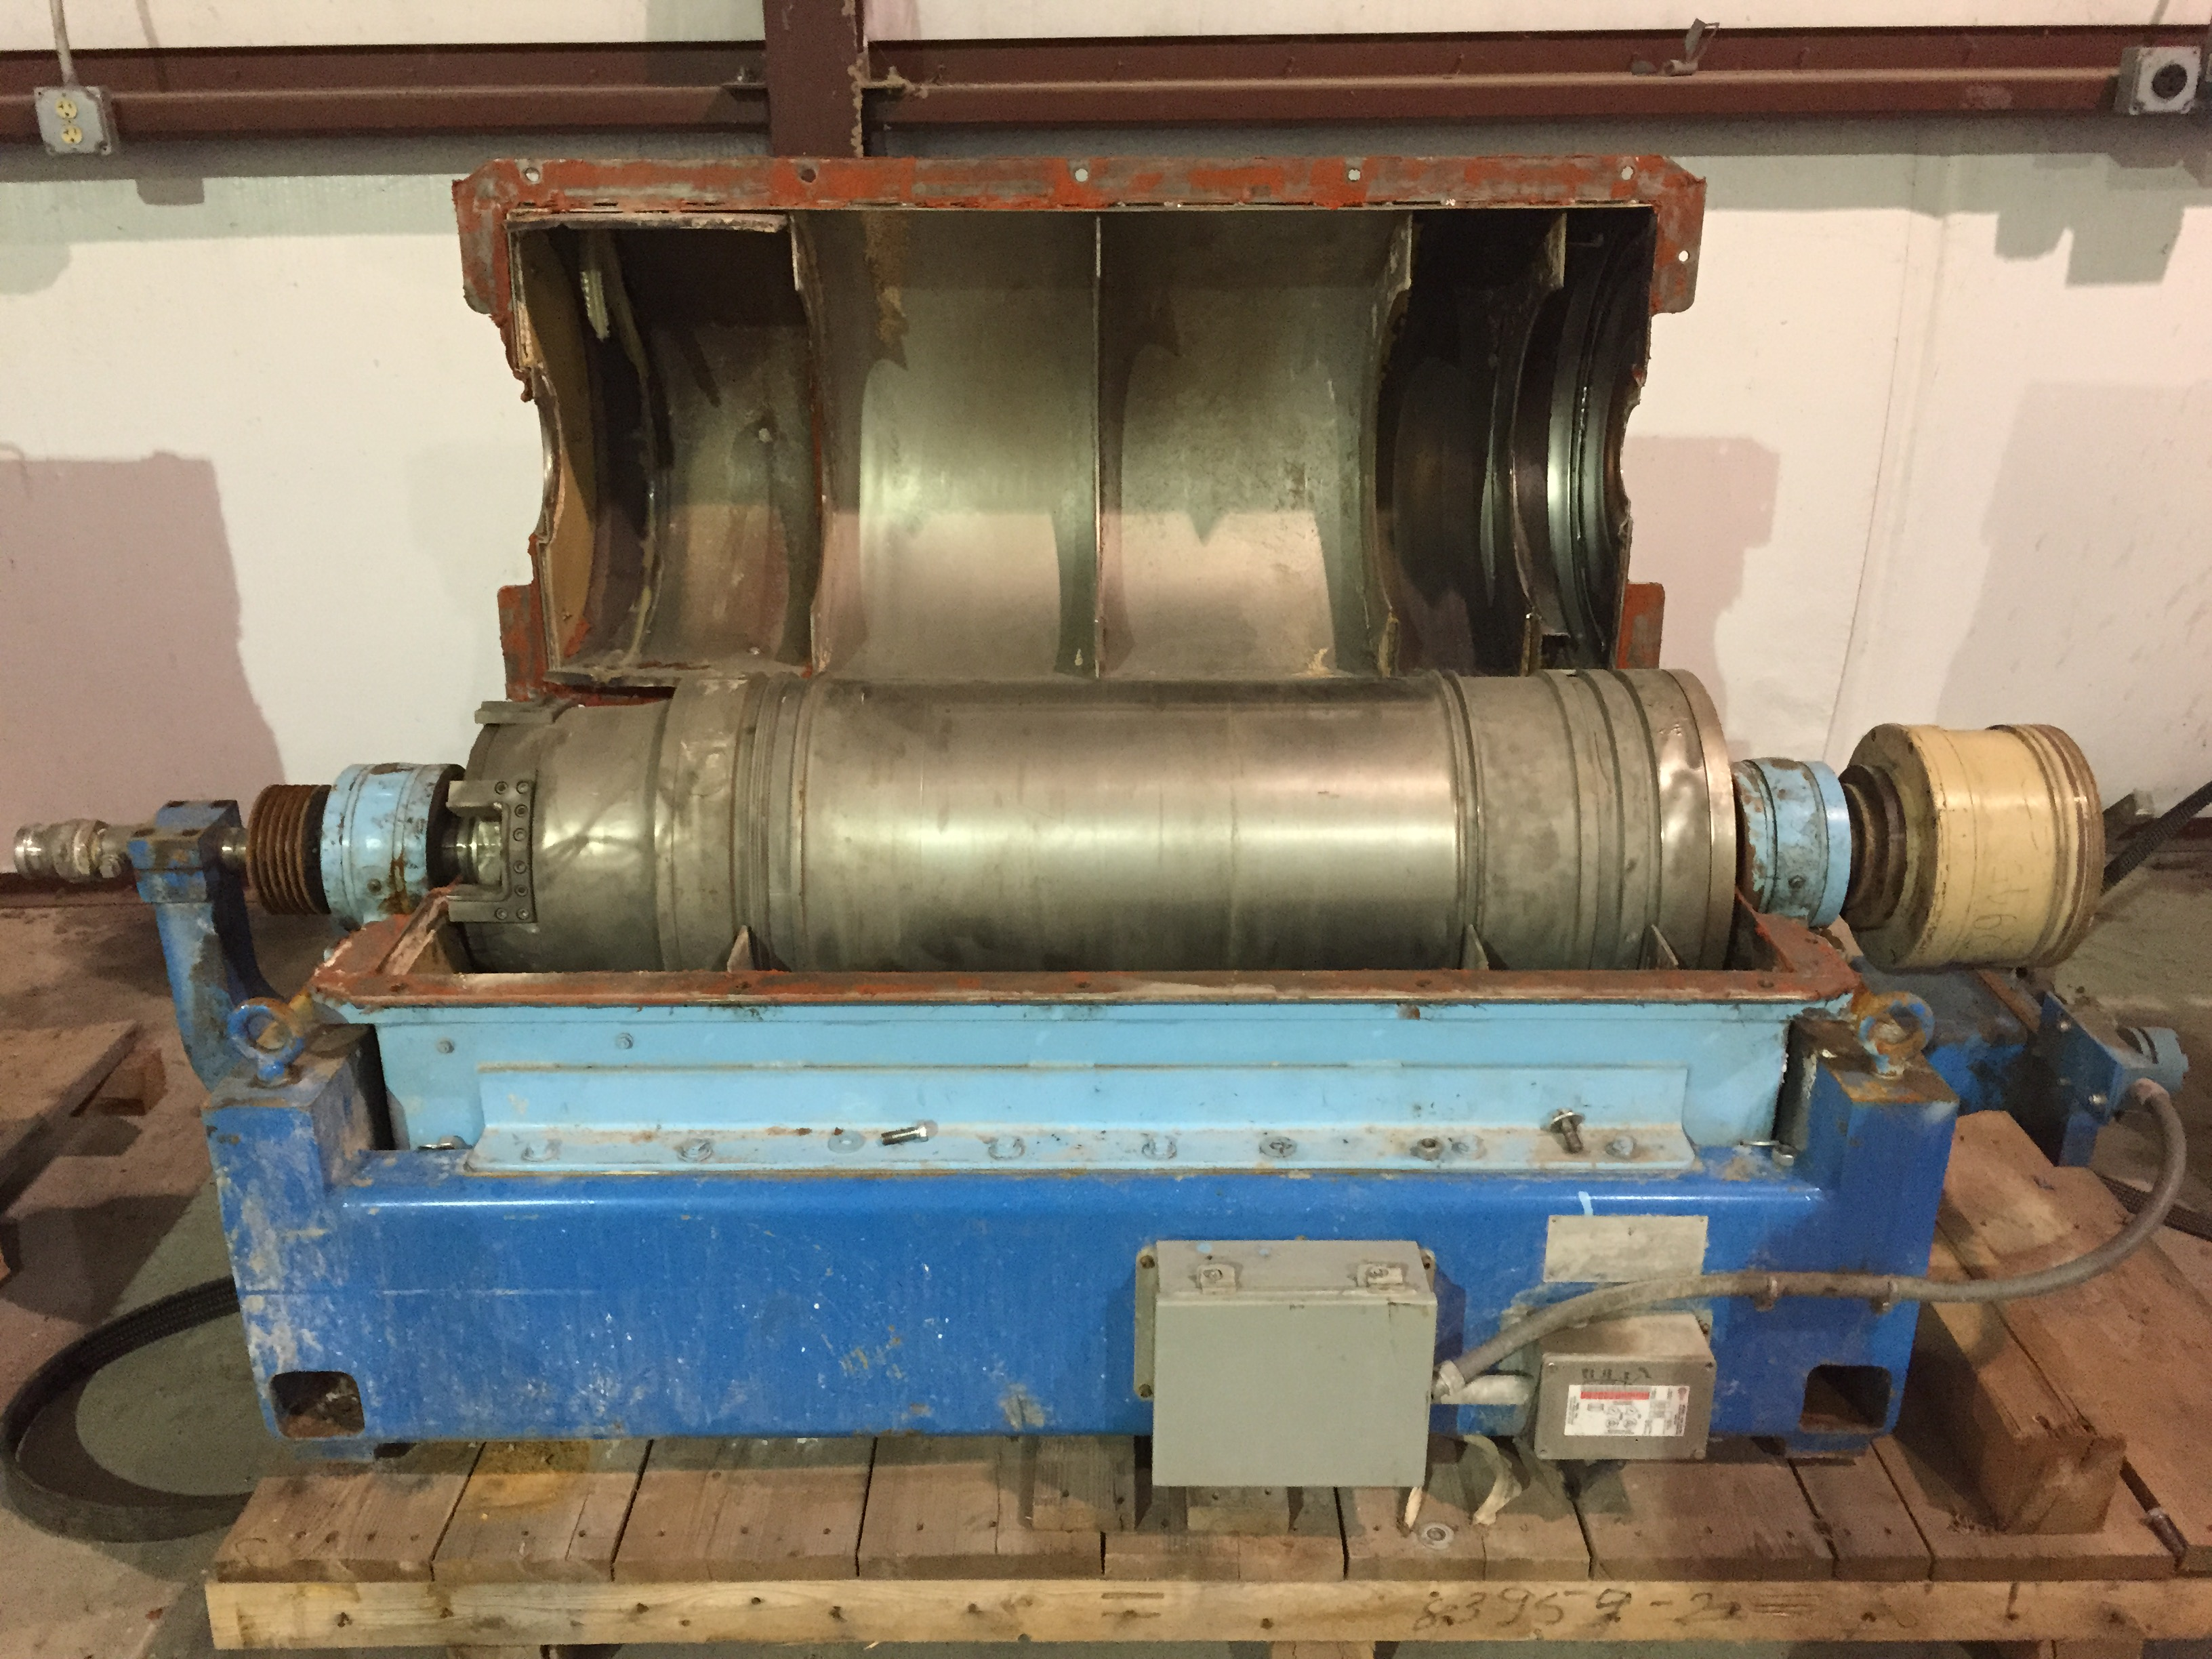 Hutchison Hayes 1448 Oilfield Decanter Centrifuge